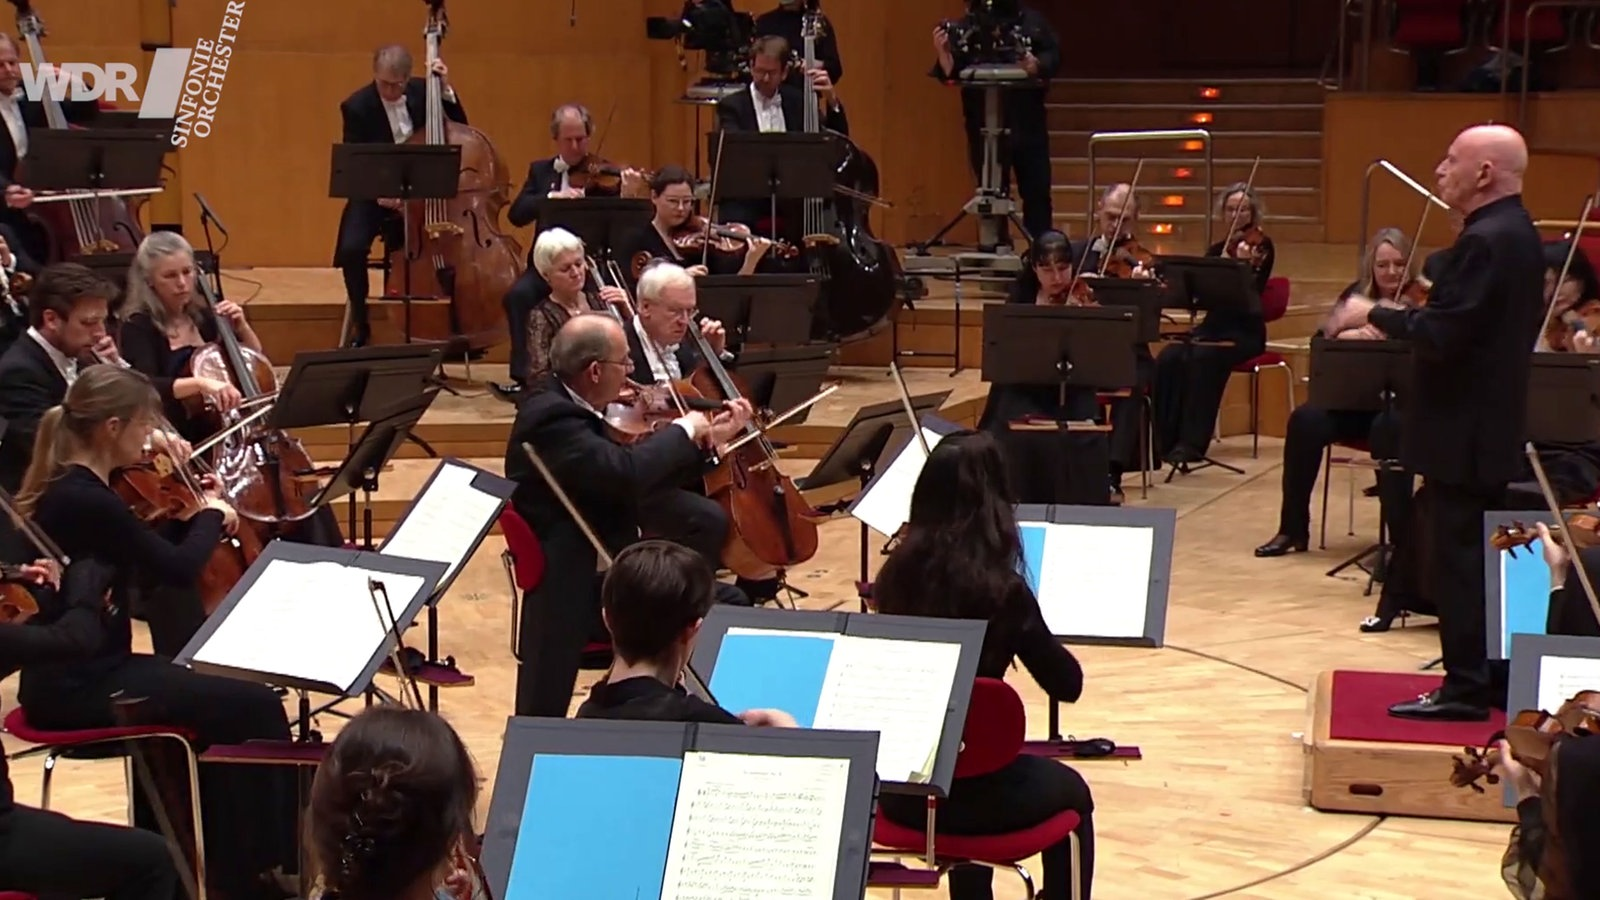 Maurice Ravel Ma Mère L Oye Wdr Sinfonieorchester Orchester Und Chor Wdr